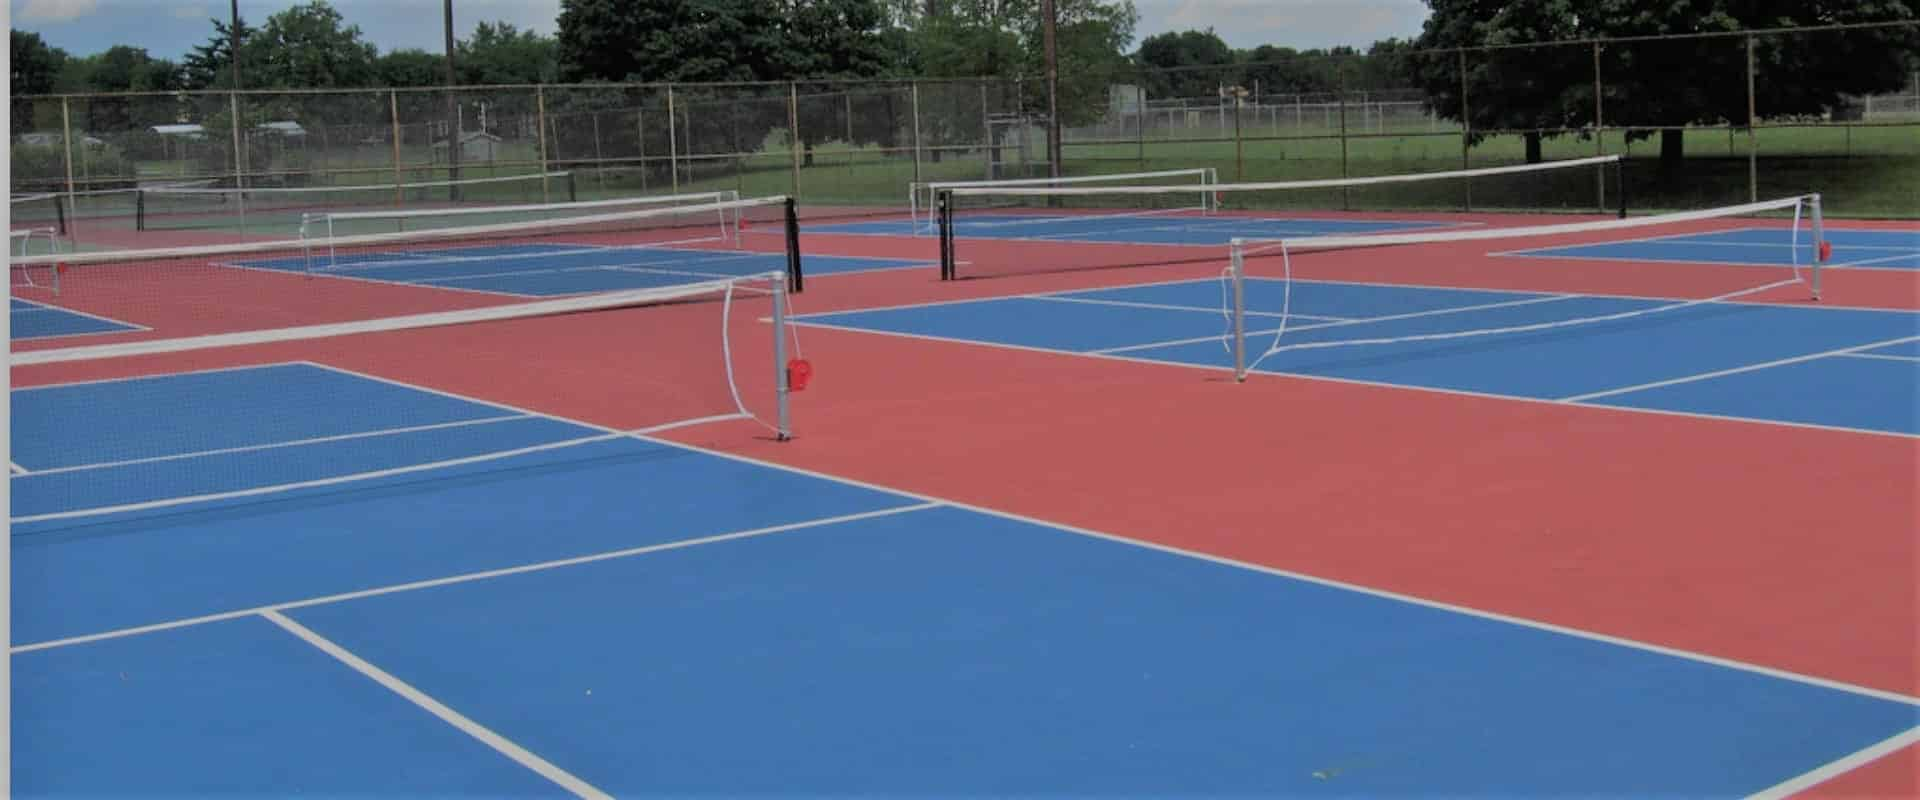 How to Build a Pickleball Court